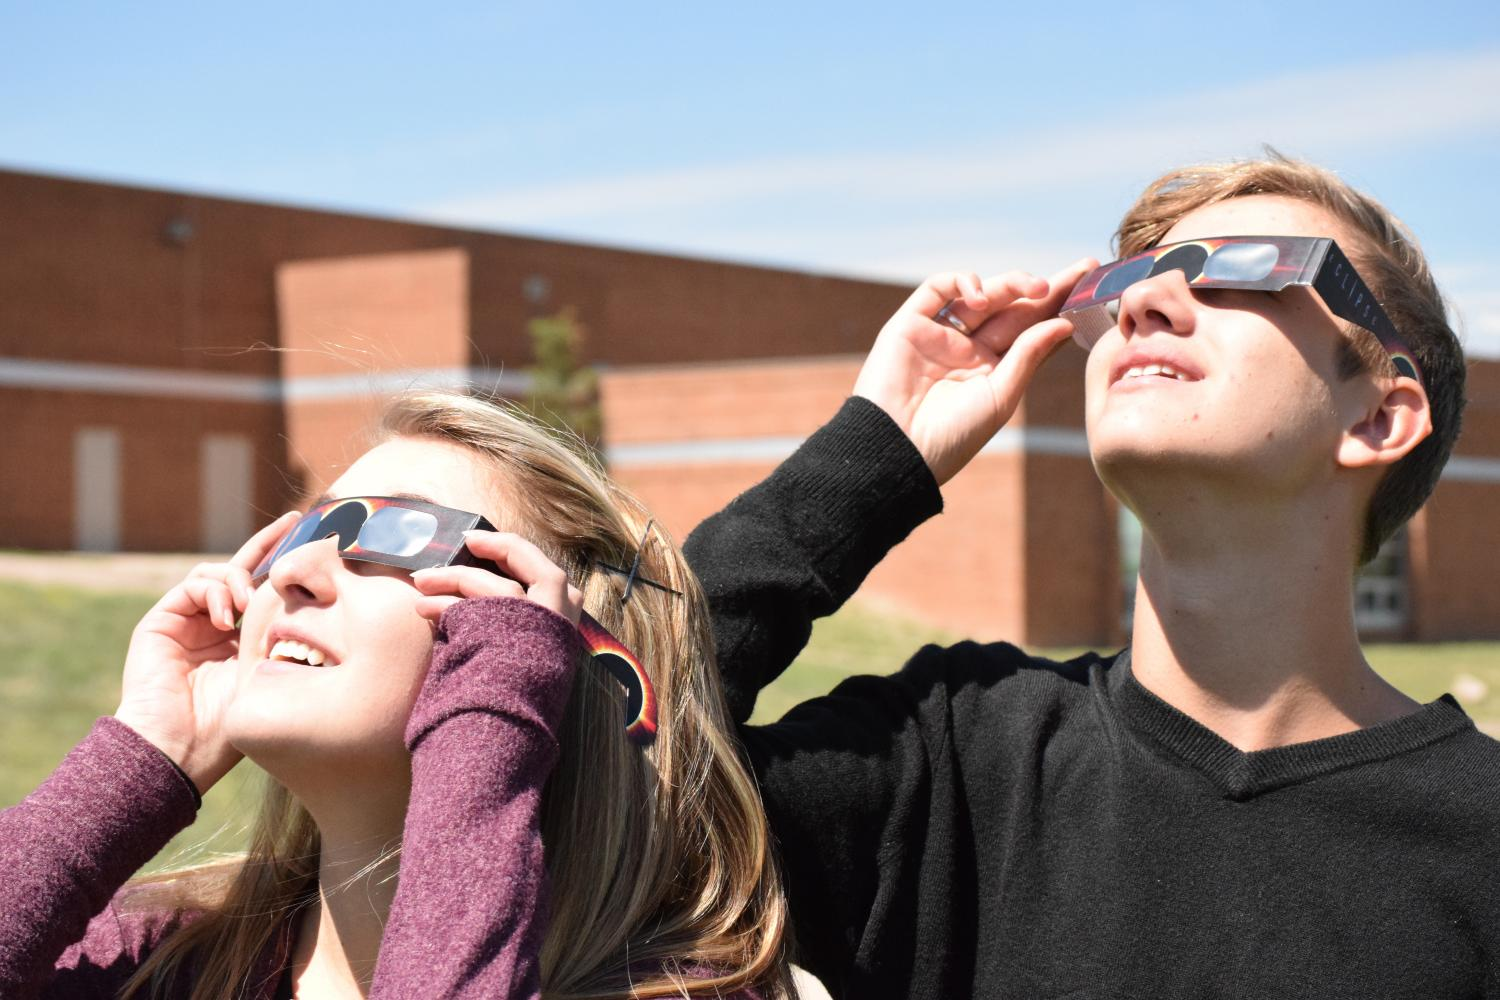 Students+Scott+Reif+and+Isabel+Hebenstreit+marvel+at+the+eclipse+as+it+passes+through+Colorado%27s+highest+point+of+totality+on+Monday+August+21.